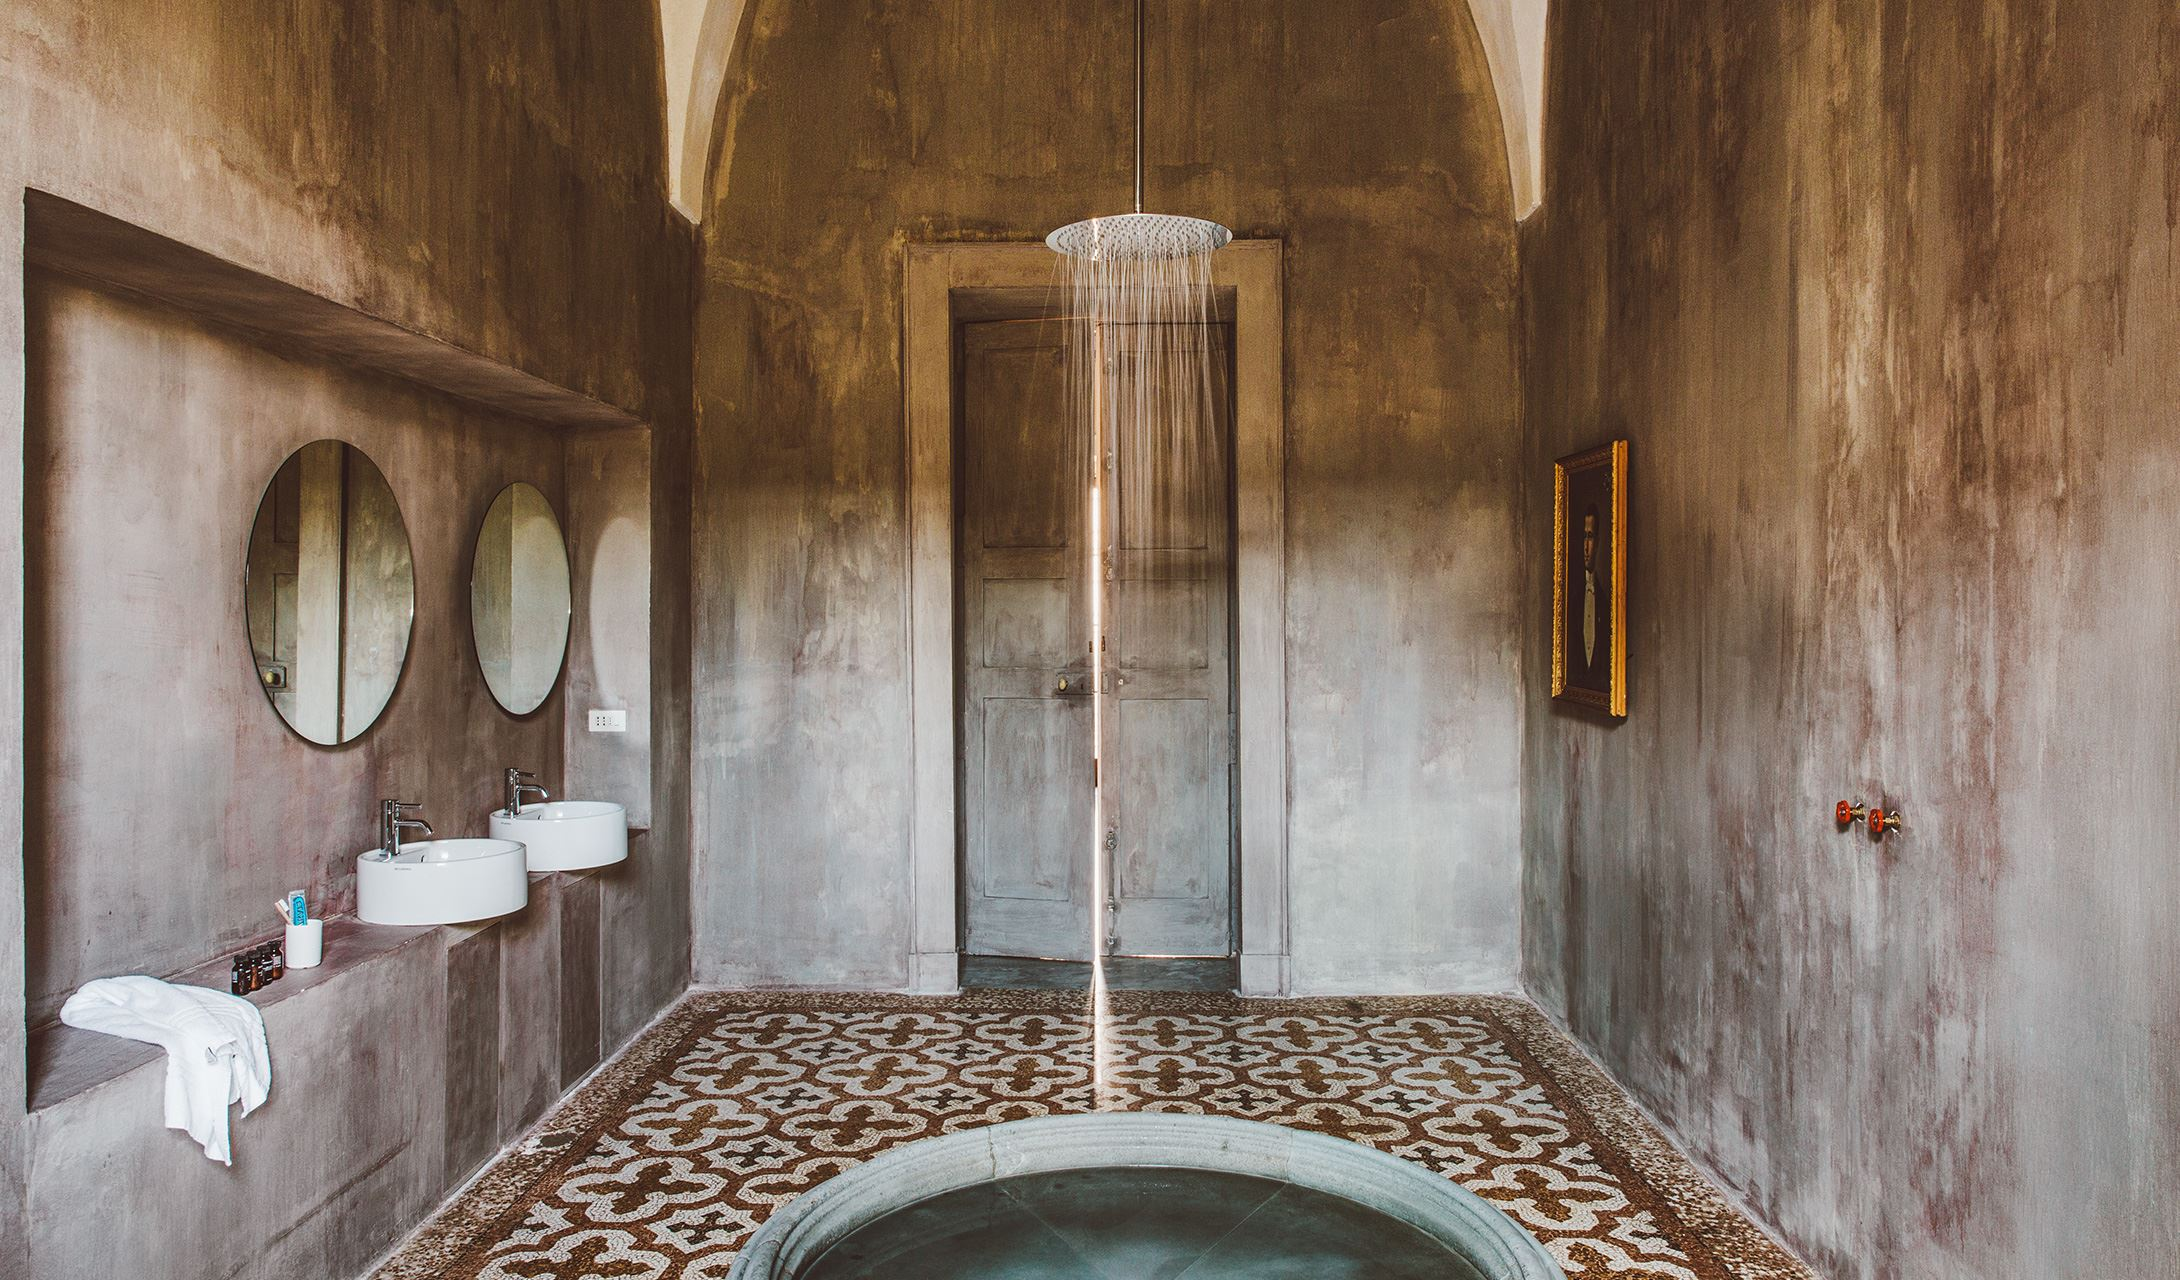 Palazzo Daniele - Modern hotel housed in a 19th Century palazzo Italy